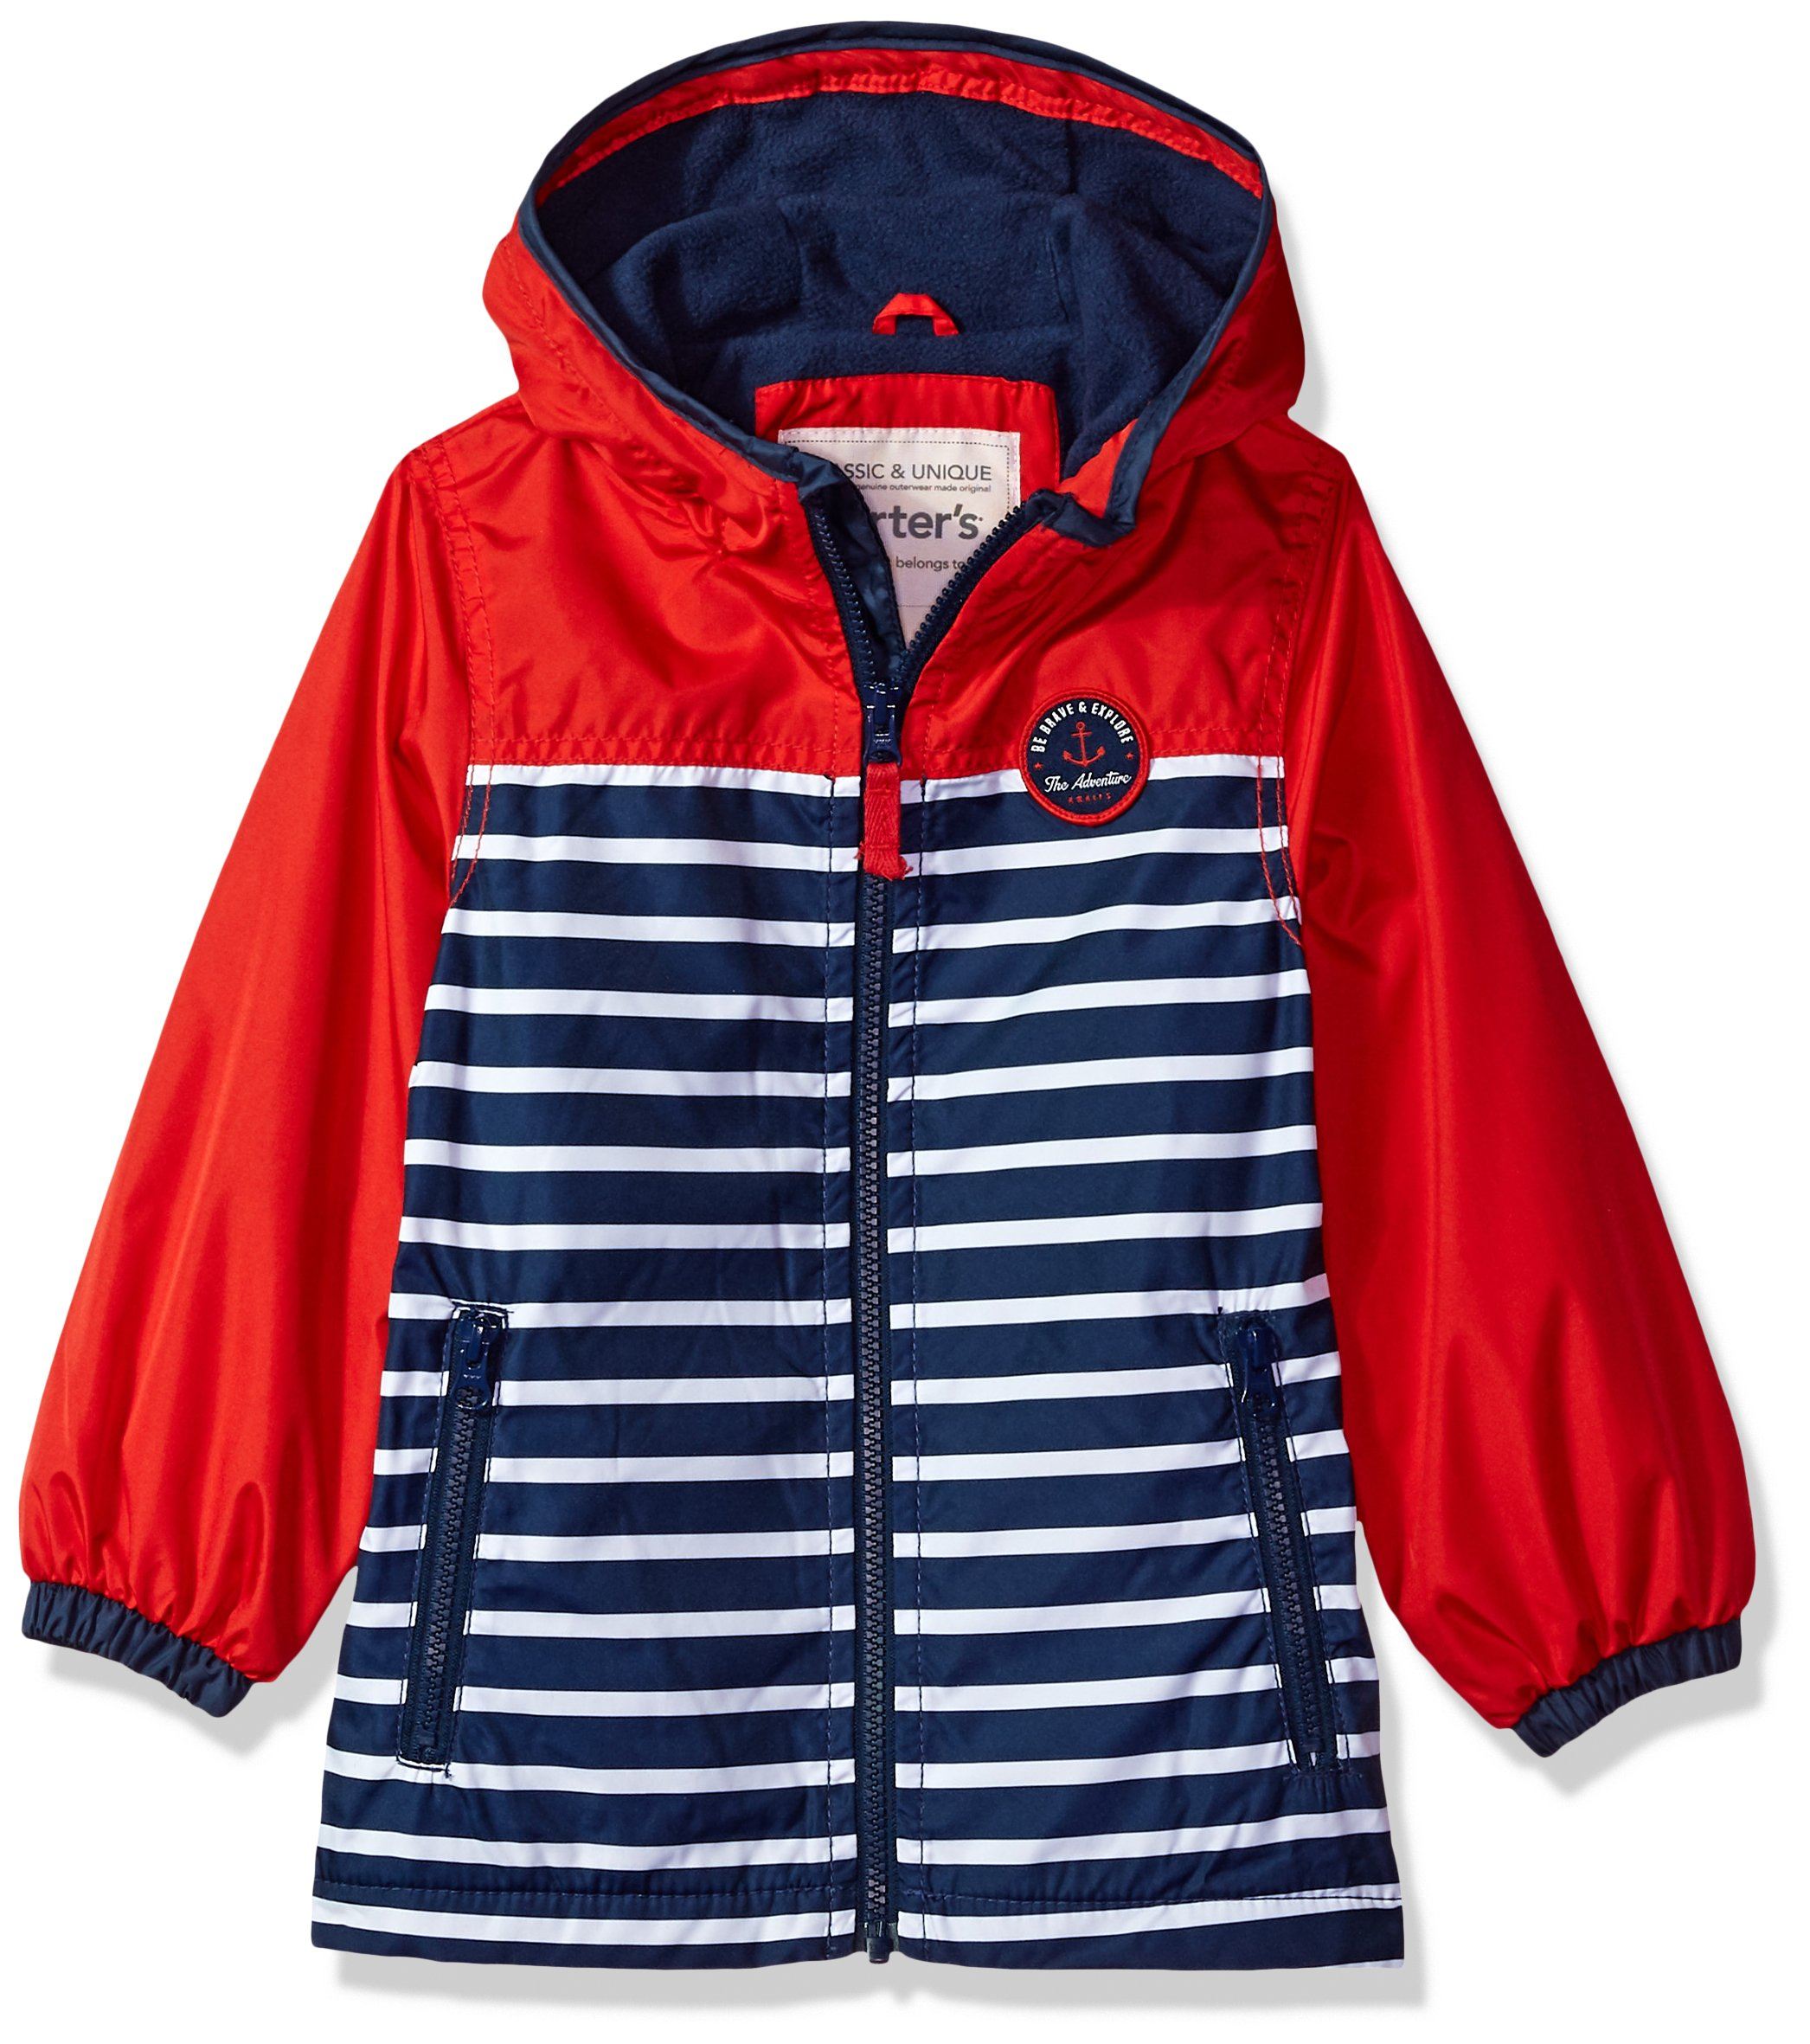 Carter's Boys' Toddler Fleece Lined Perfect Midweight Jacket, red/Navy, 3T